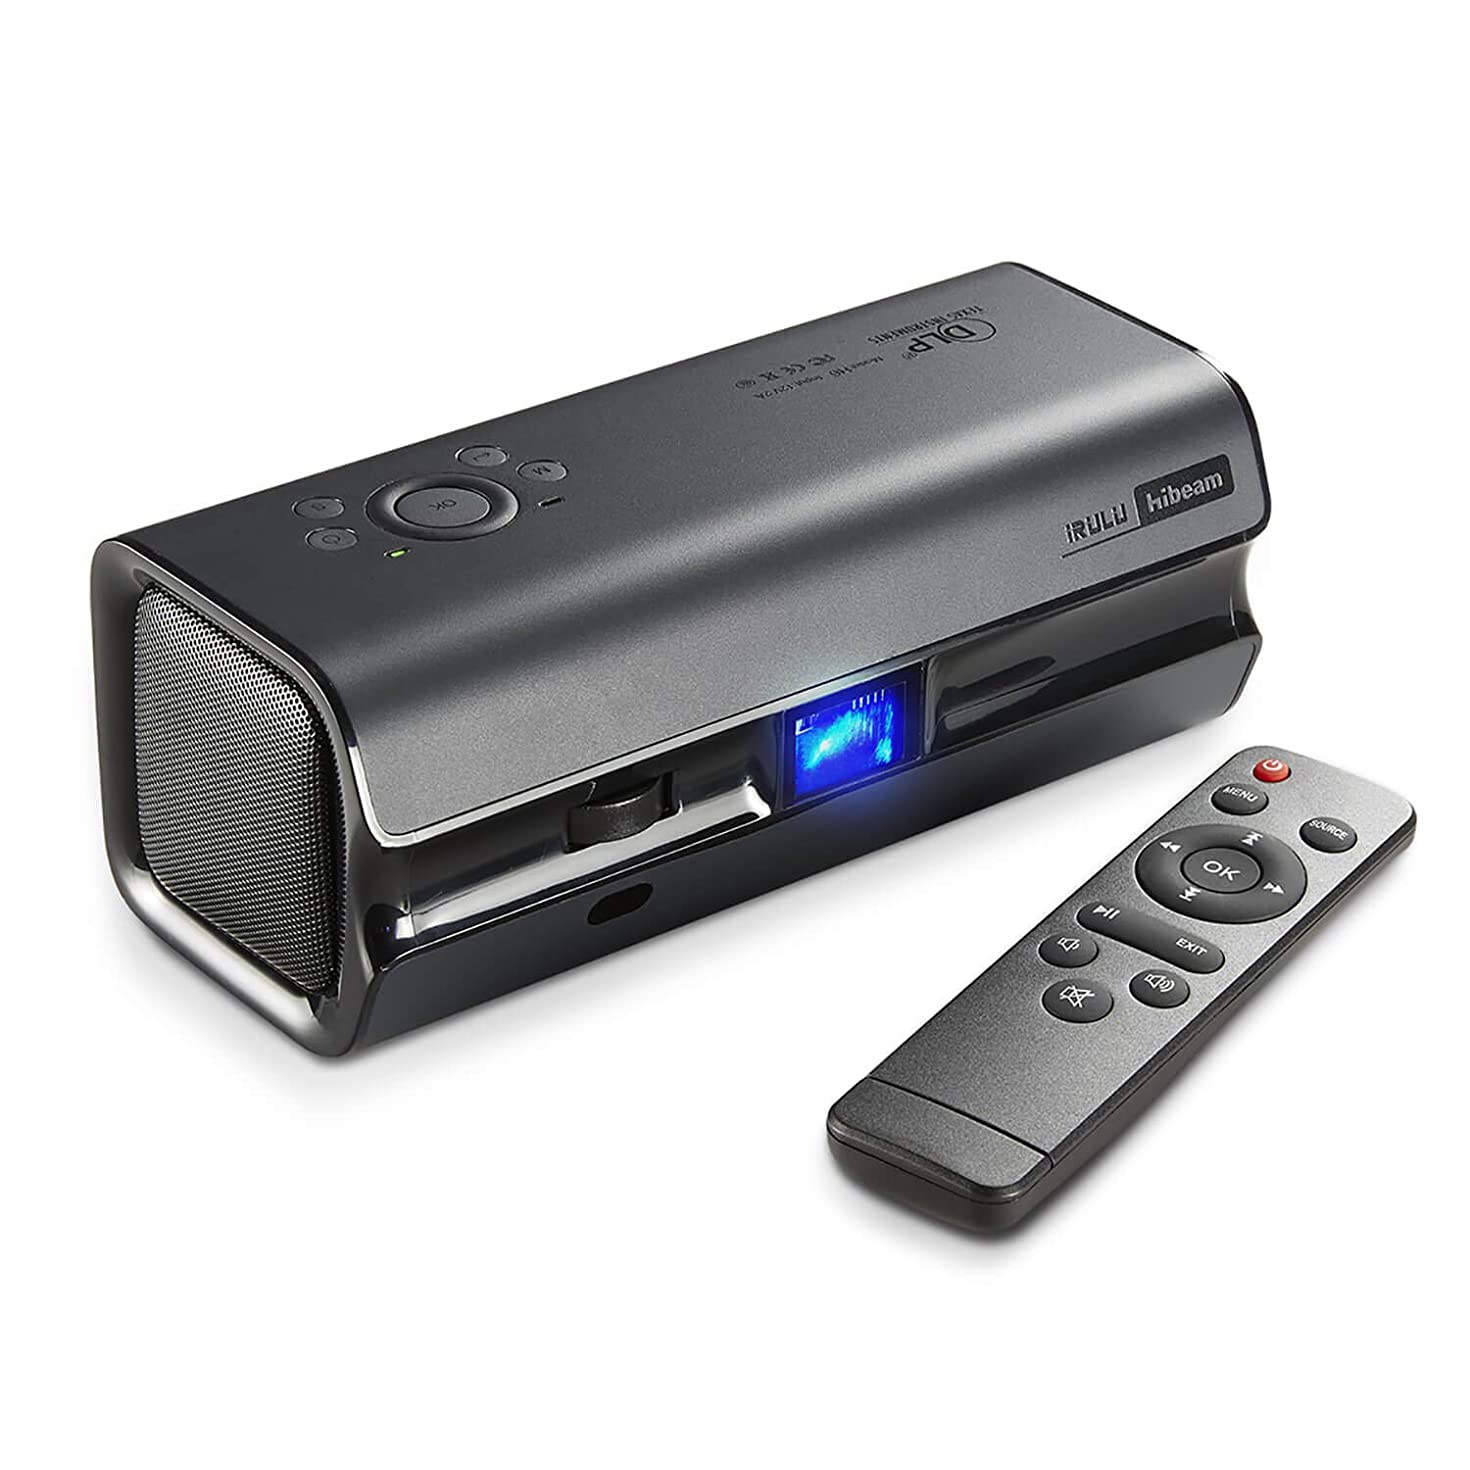 iRULU H6 DLP Portable Video Projector, Full HD 1080P HDMI Multimedia Projectors, Support 15''-120'' Projection Screen for Home Theater Movie Cinema Entertainment